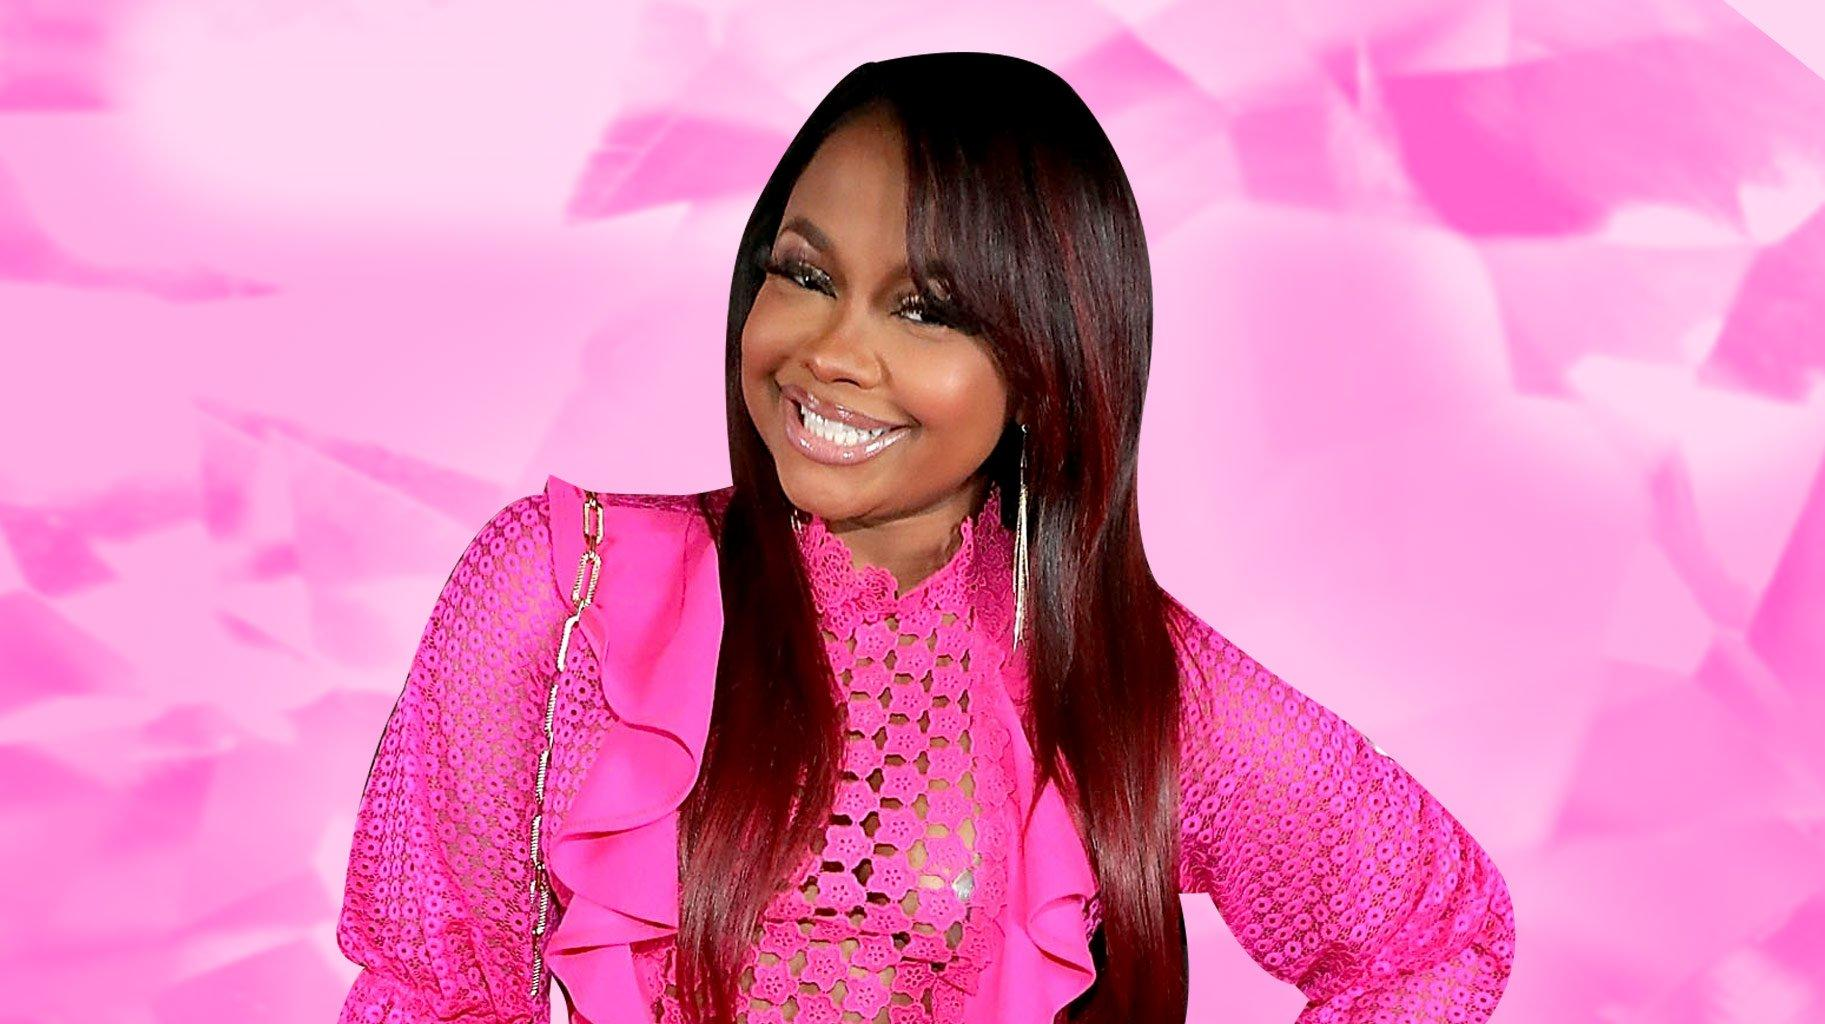 Phaedra Parks Looks Gorgeous In This Red Outfit - See Her Photo